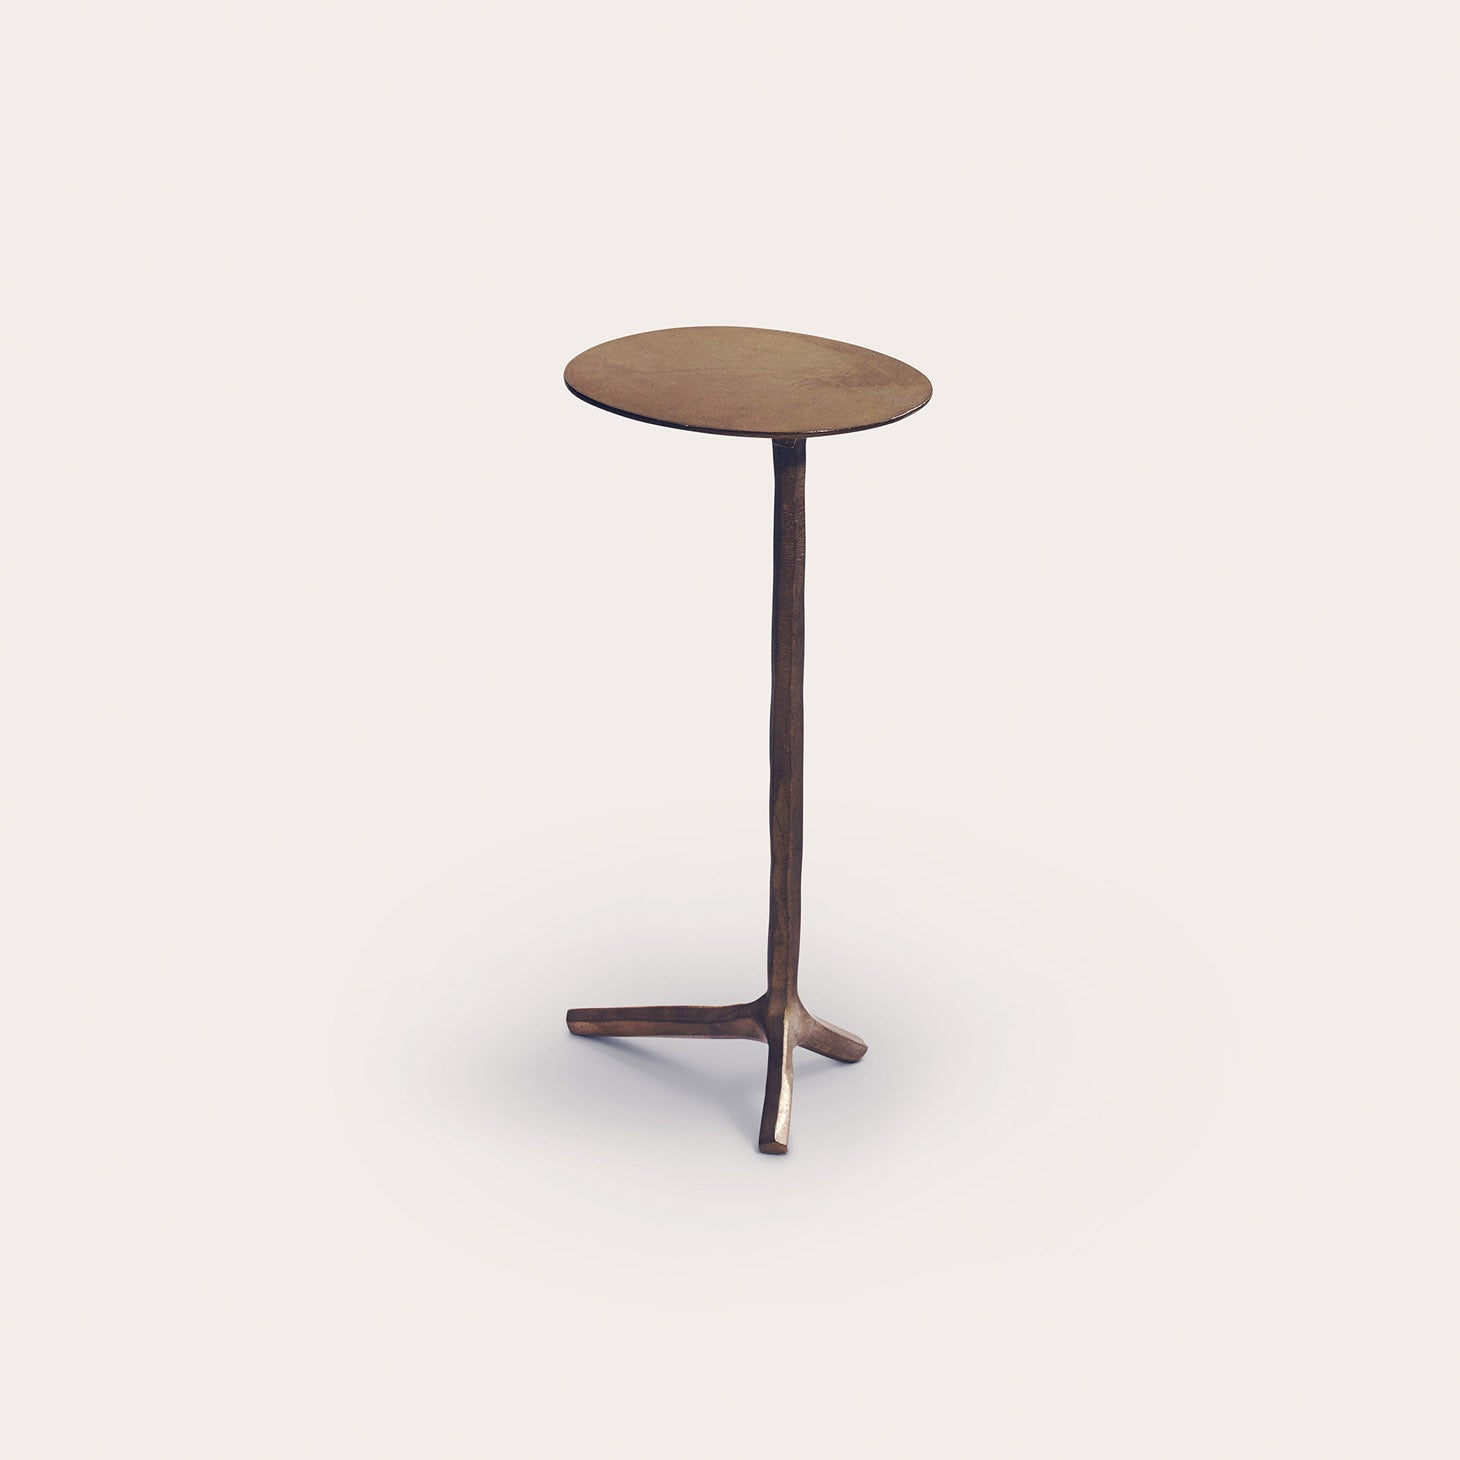 Klink Tables Piet Boon Designer Furniture Sku: 784-230-10002